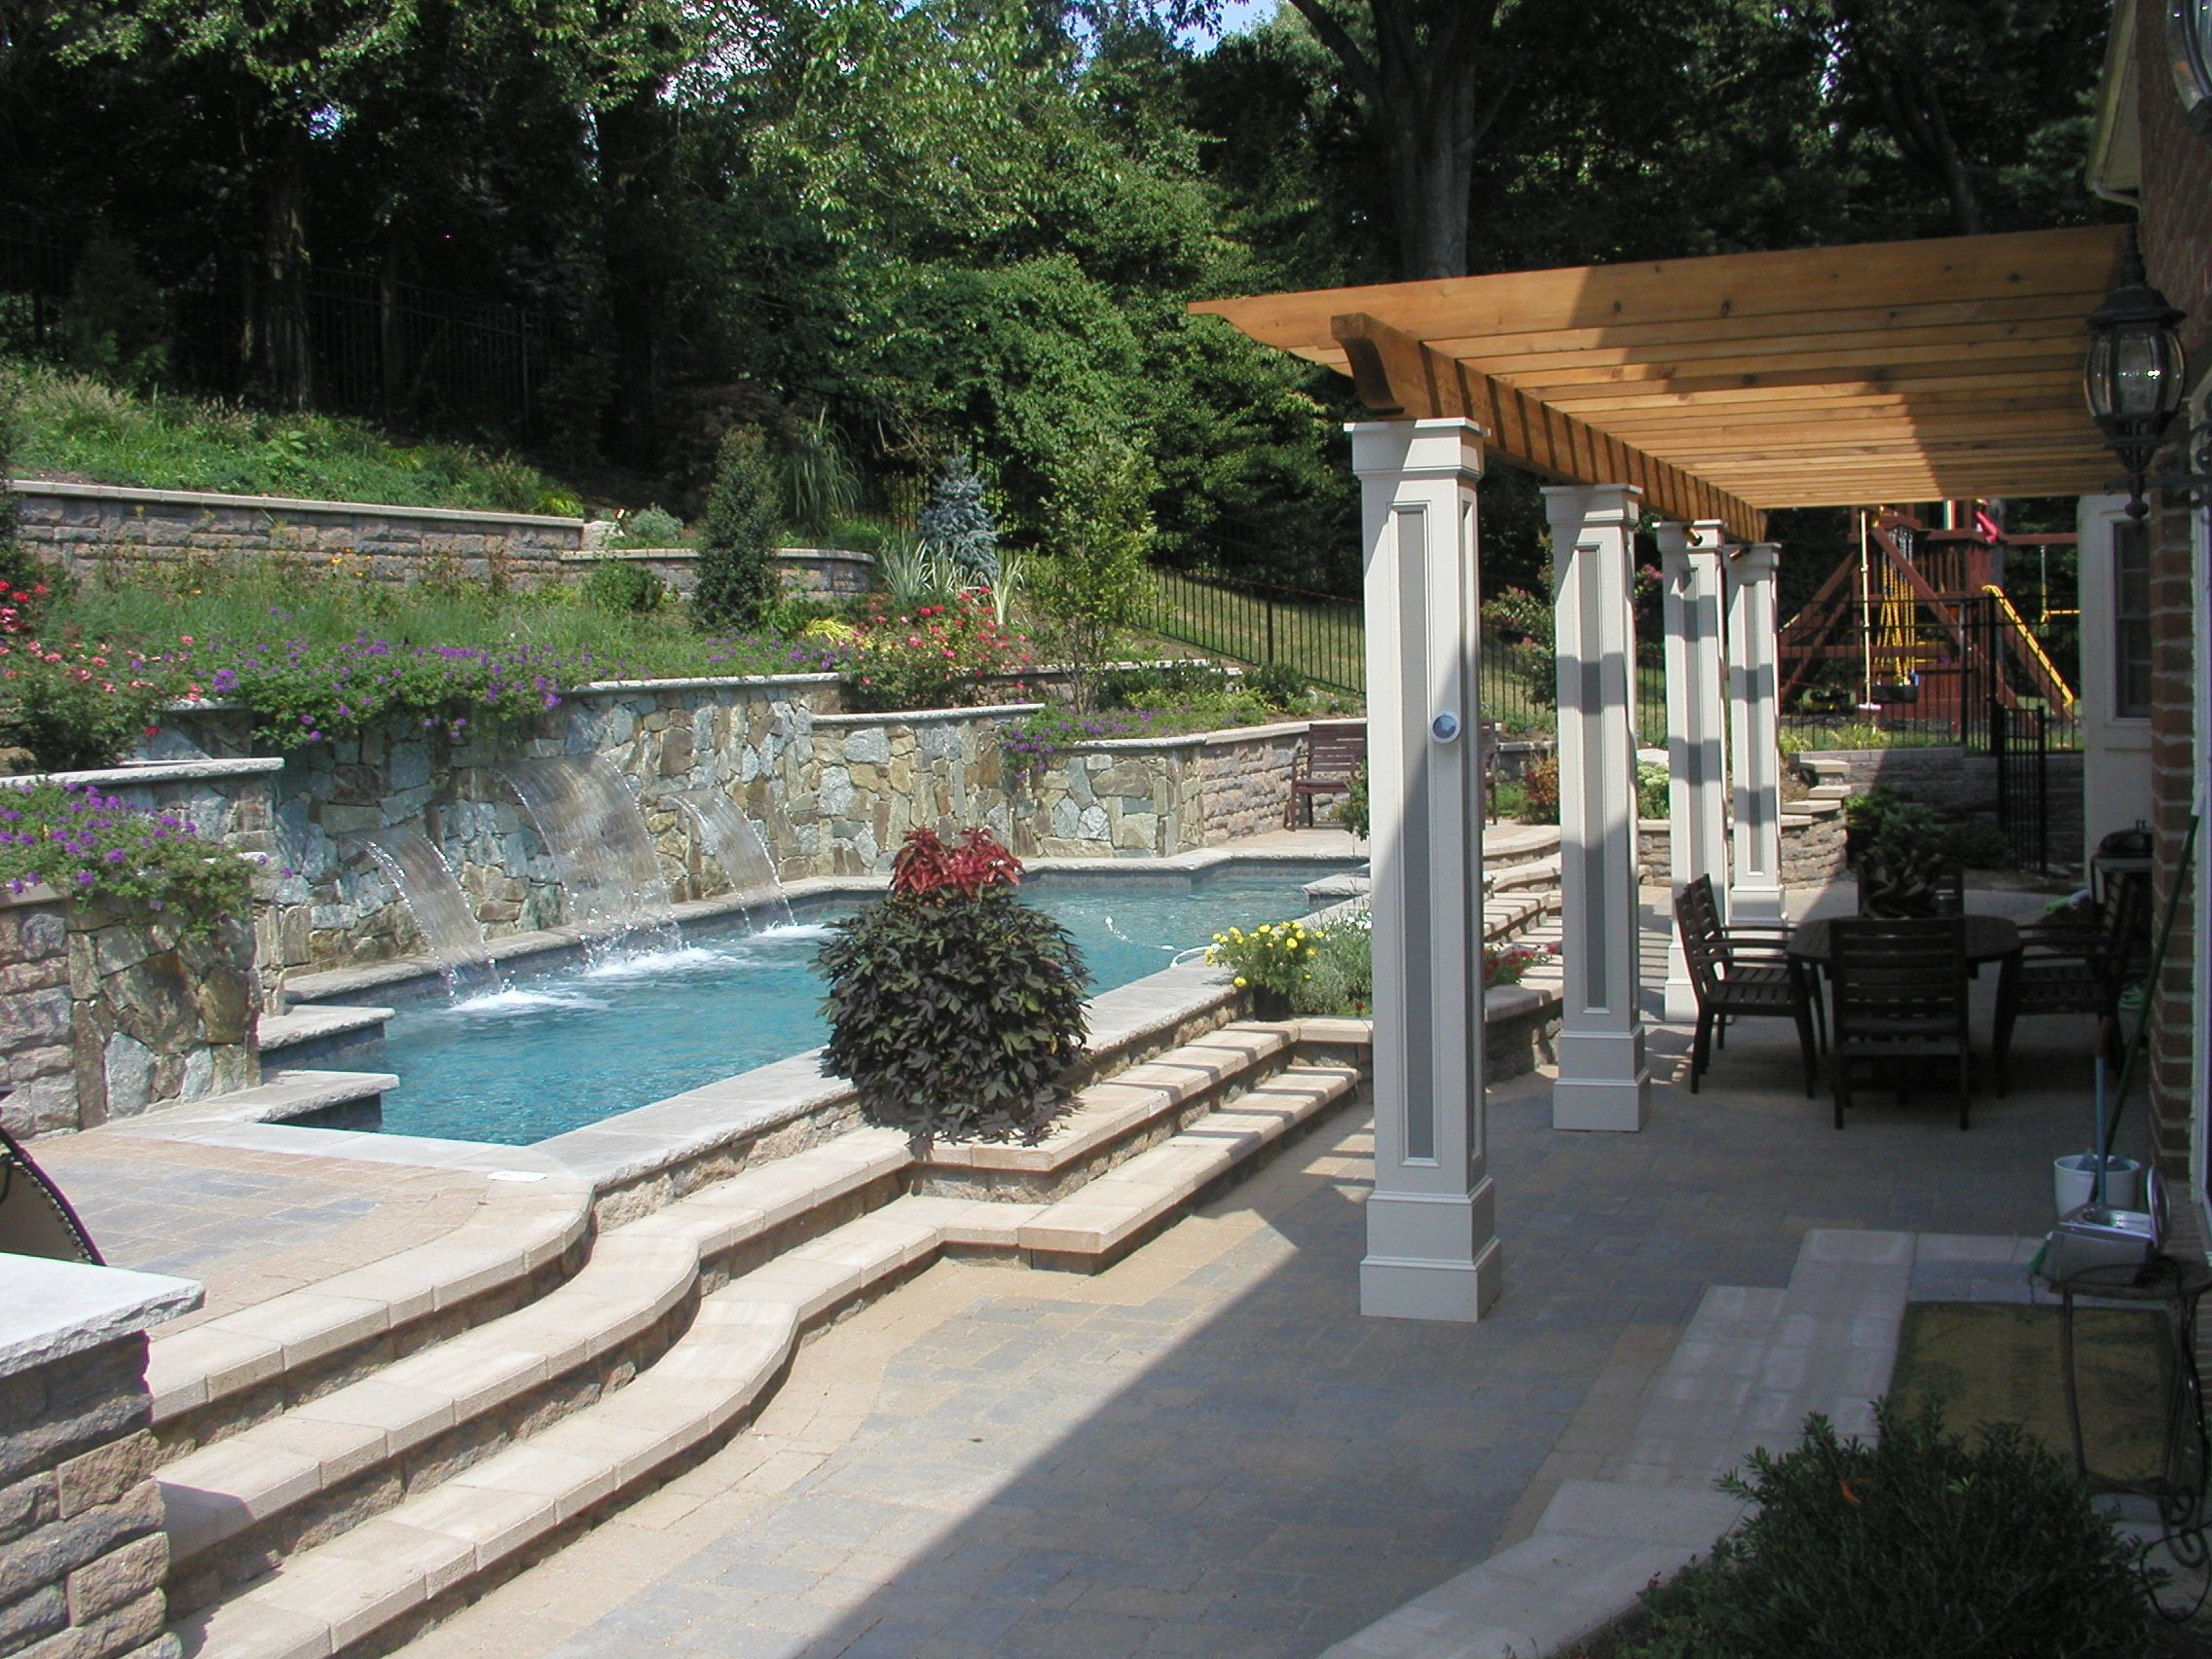 Hillside Landscaping and Pool in Chevy Chase MD Land & Water